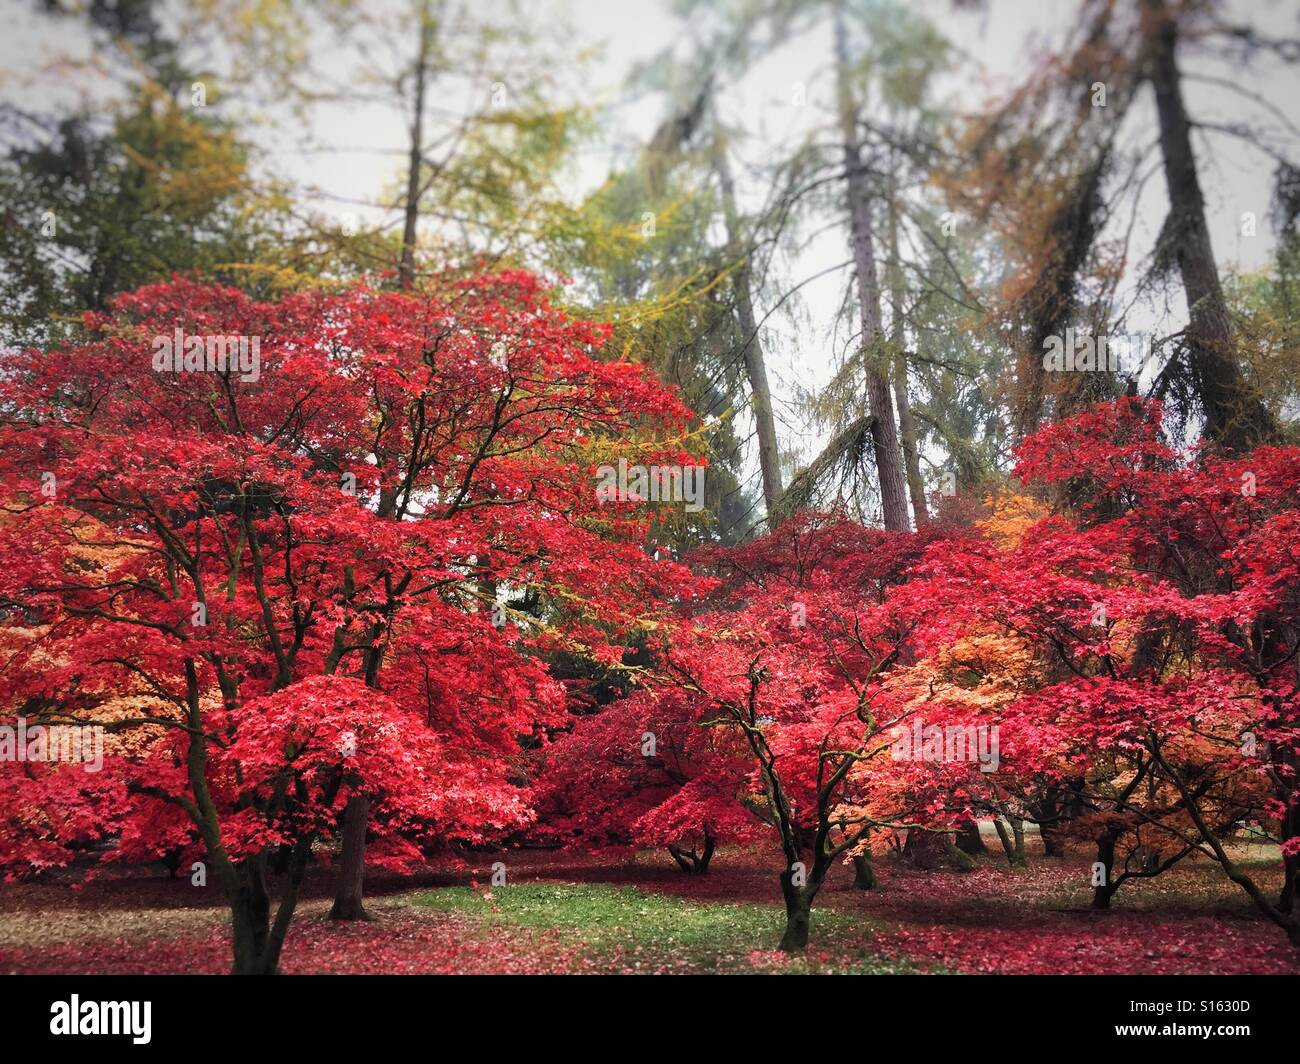 Autumnal trees at Arboretum Stock Photo